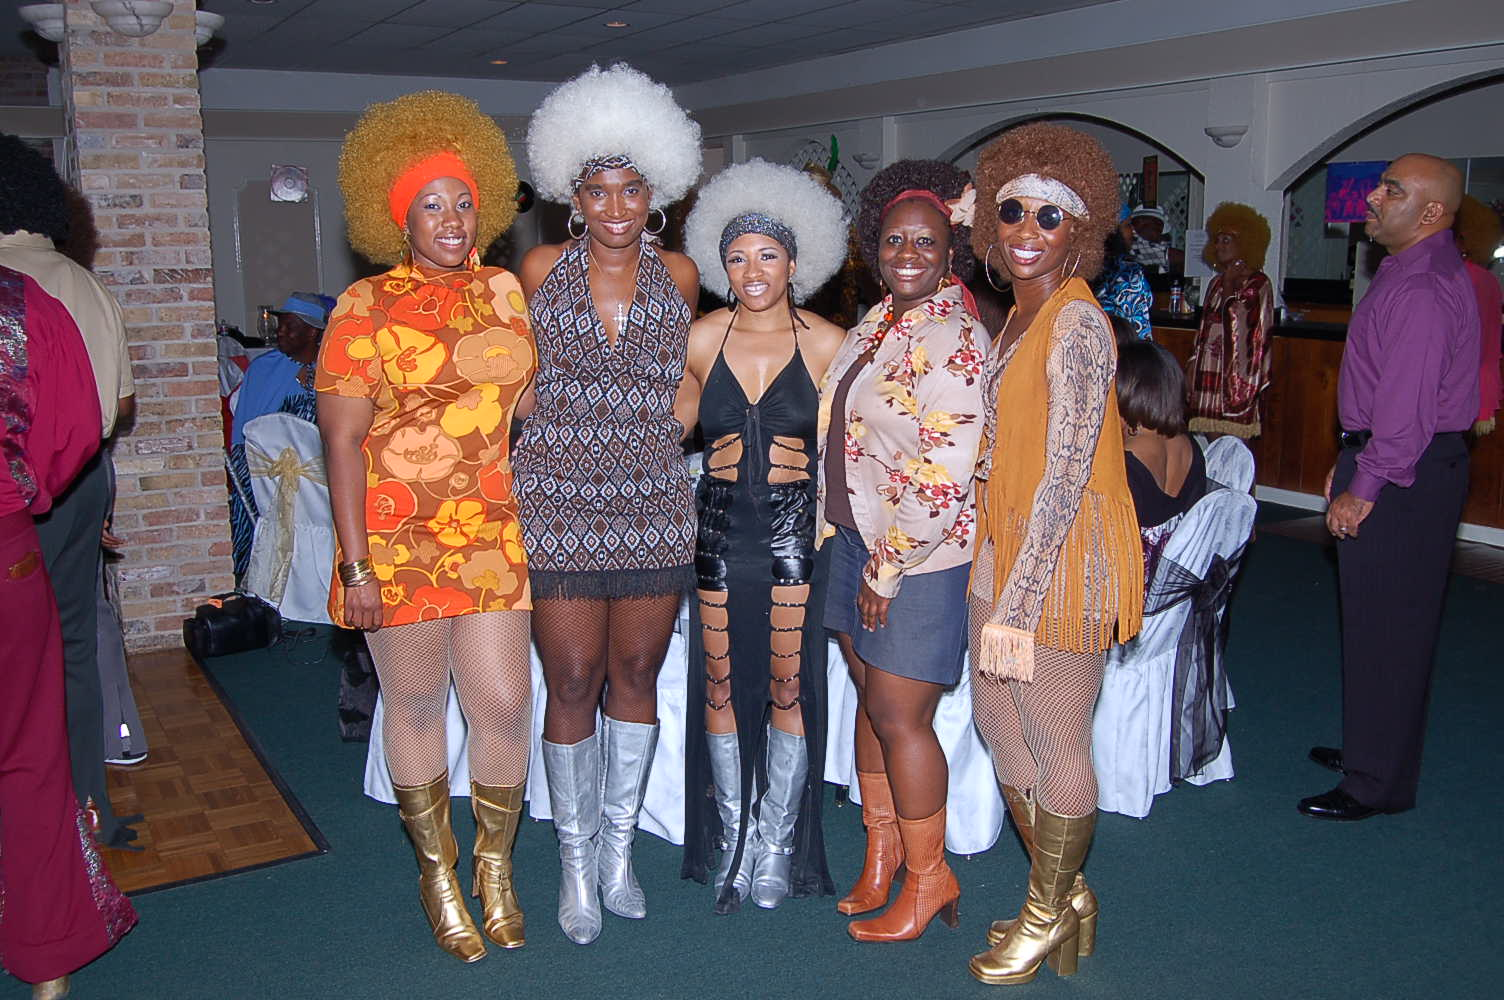 70s Theme Party Costumes